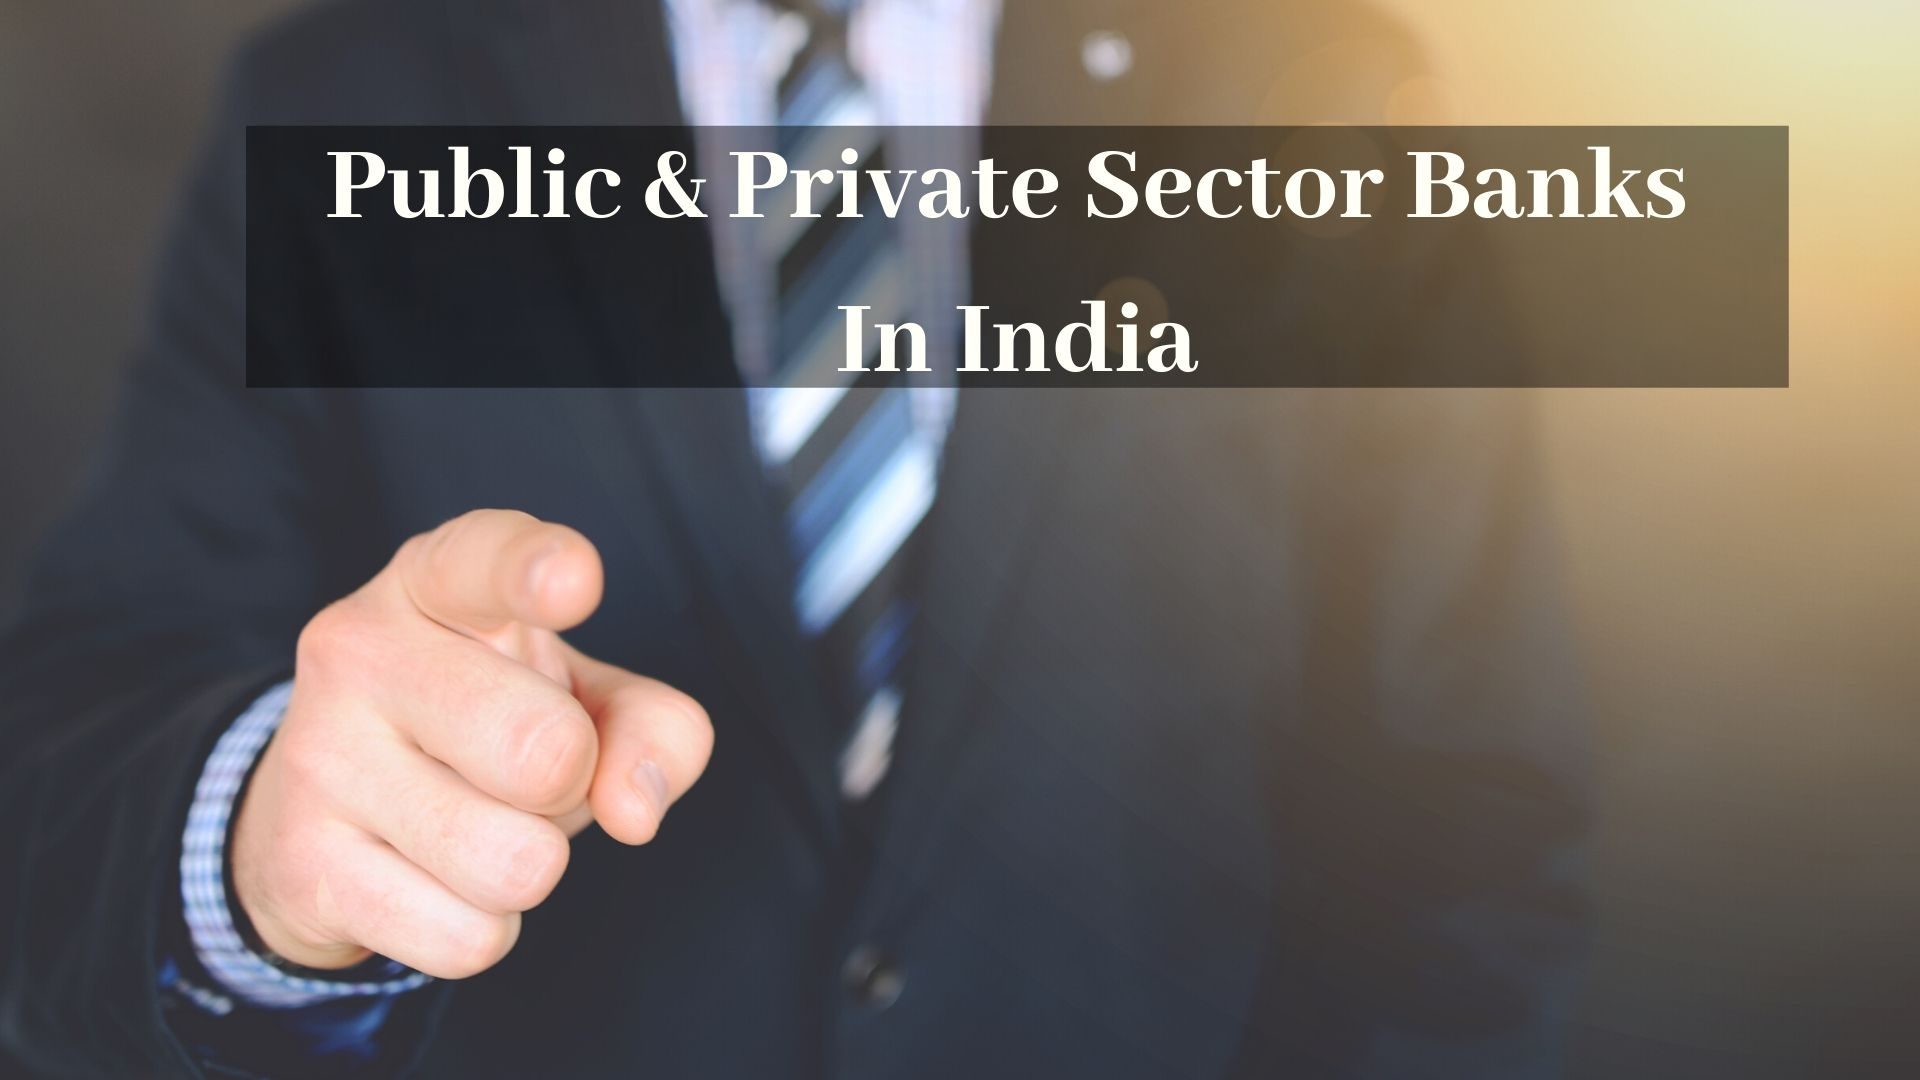 Top 15 Largest Public & Private Sector Banks in India (2020)